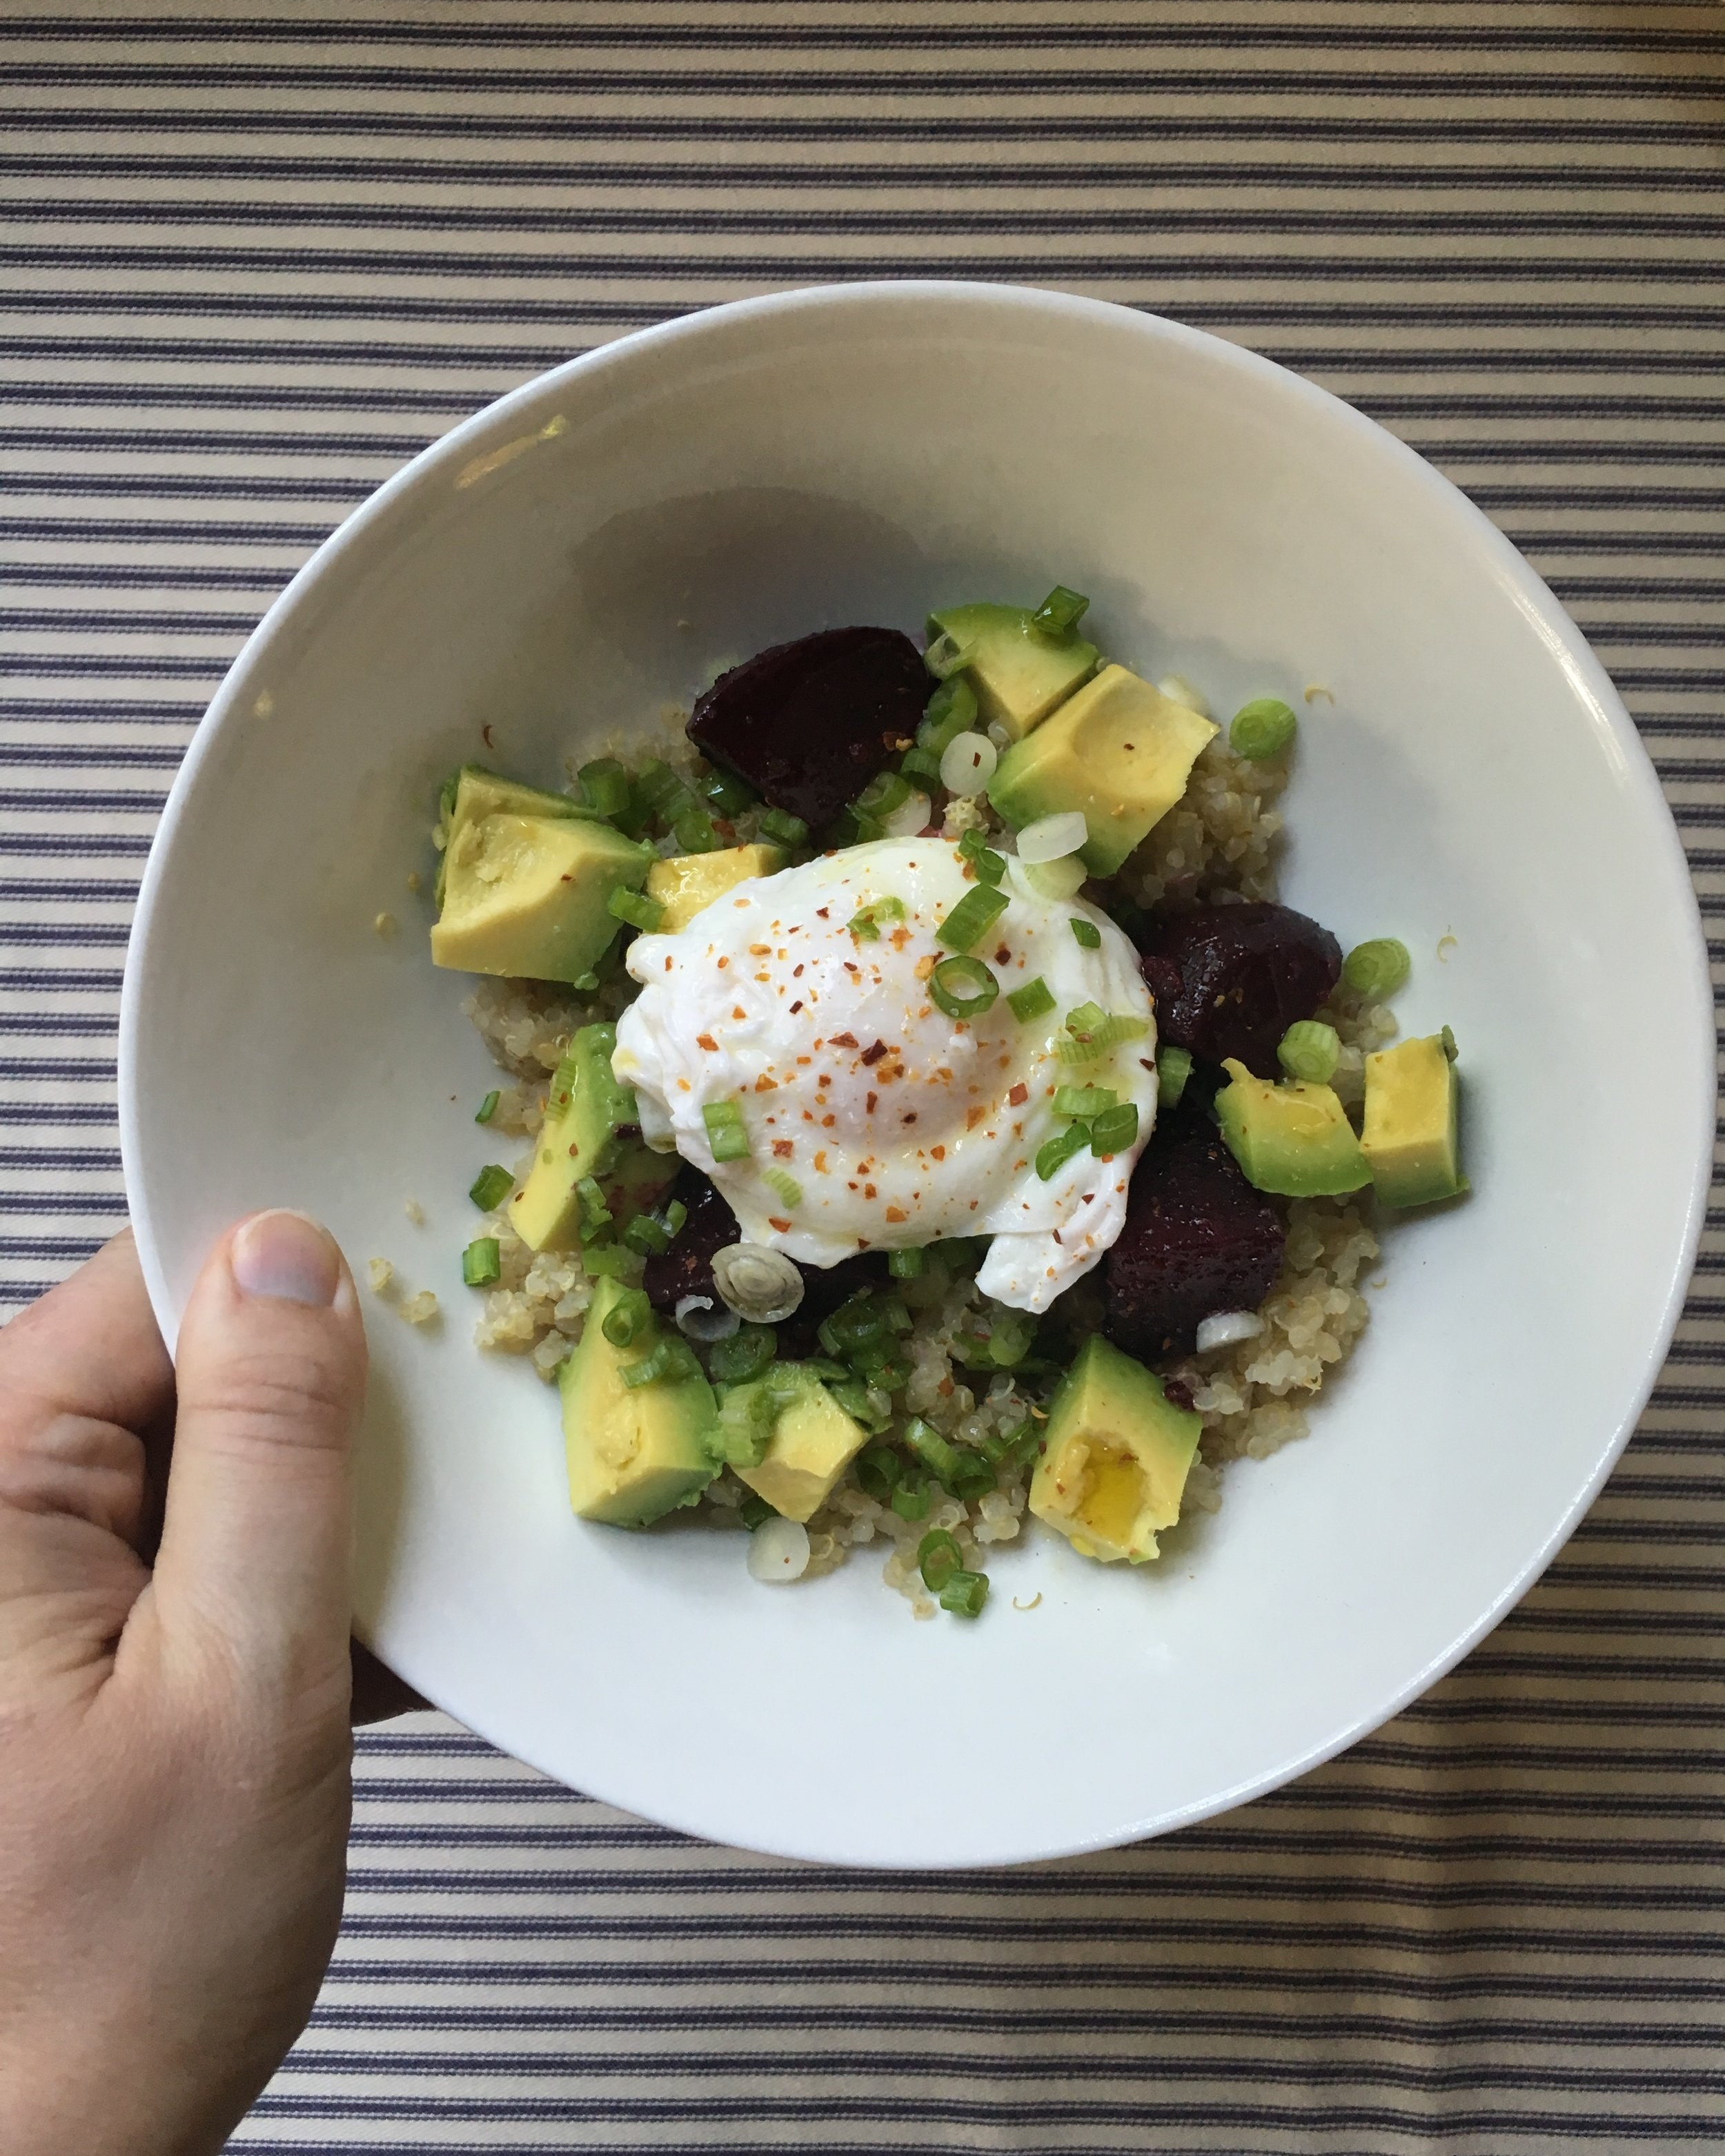 Quinoa Bowl with Glazed Beets, Avocado and Soft Poached Egg